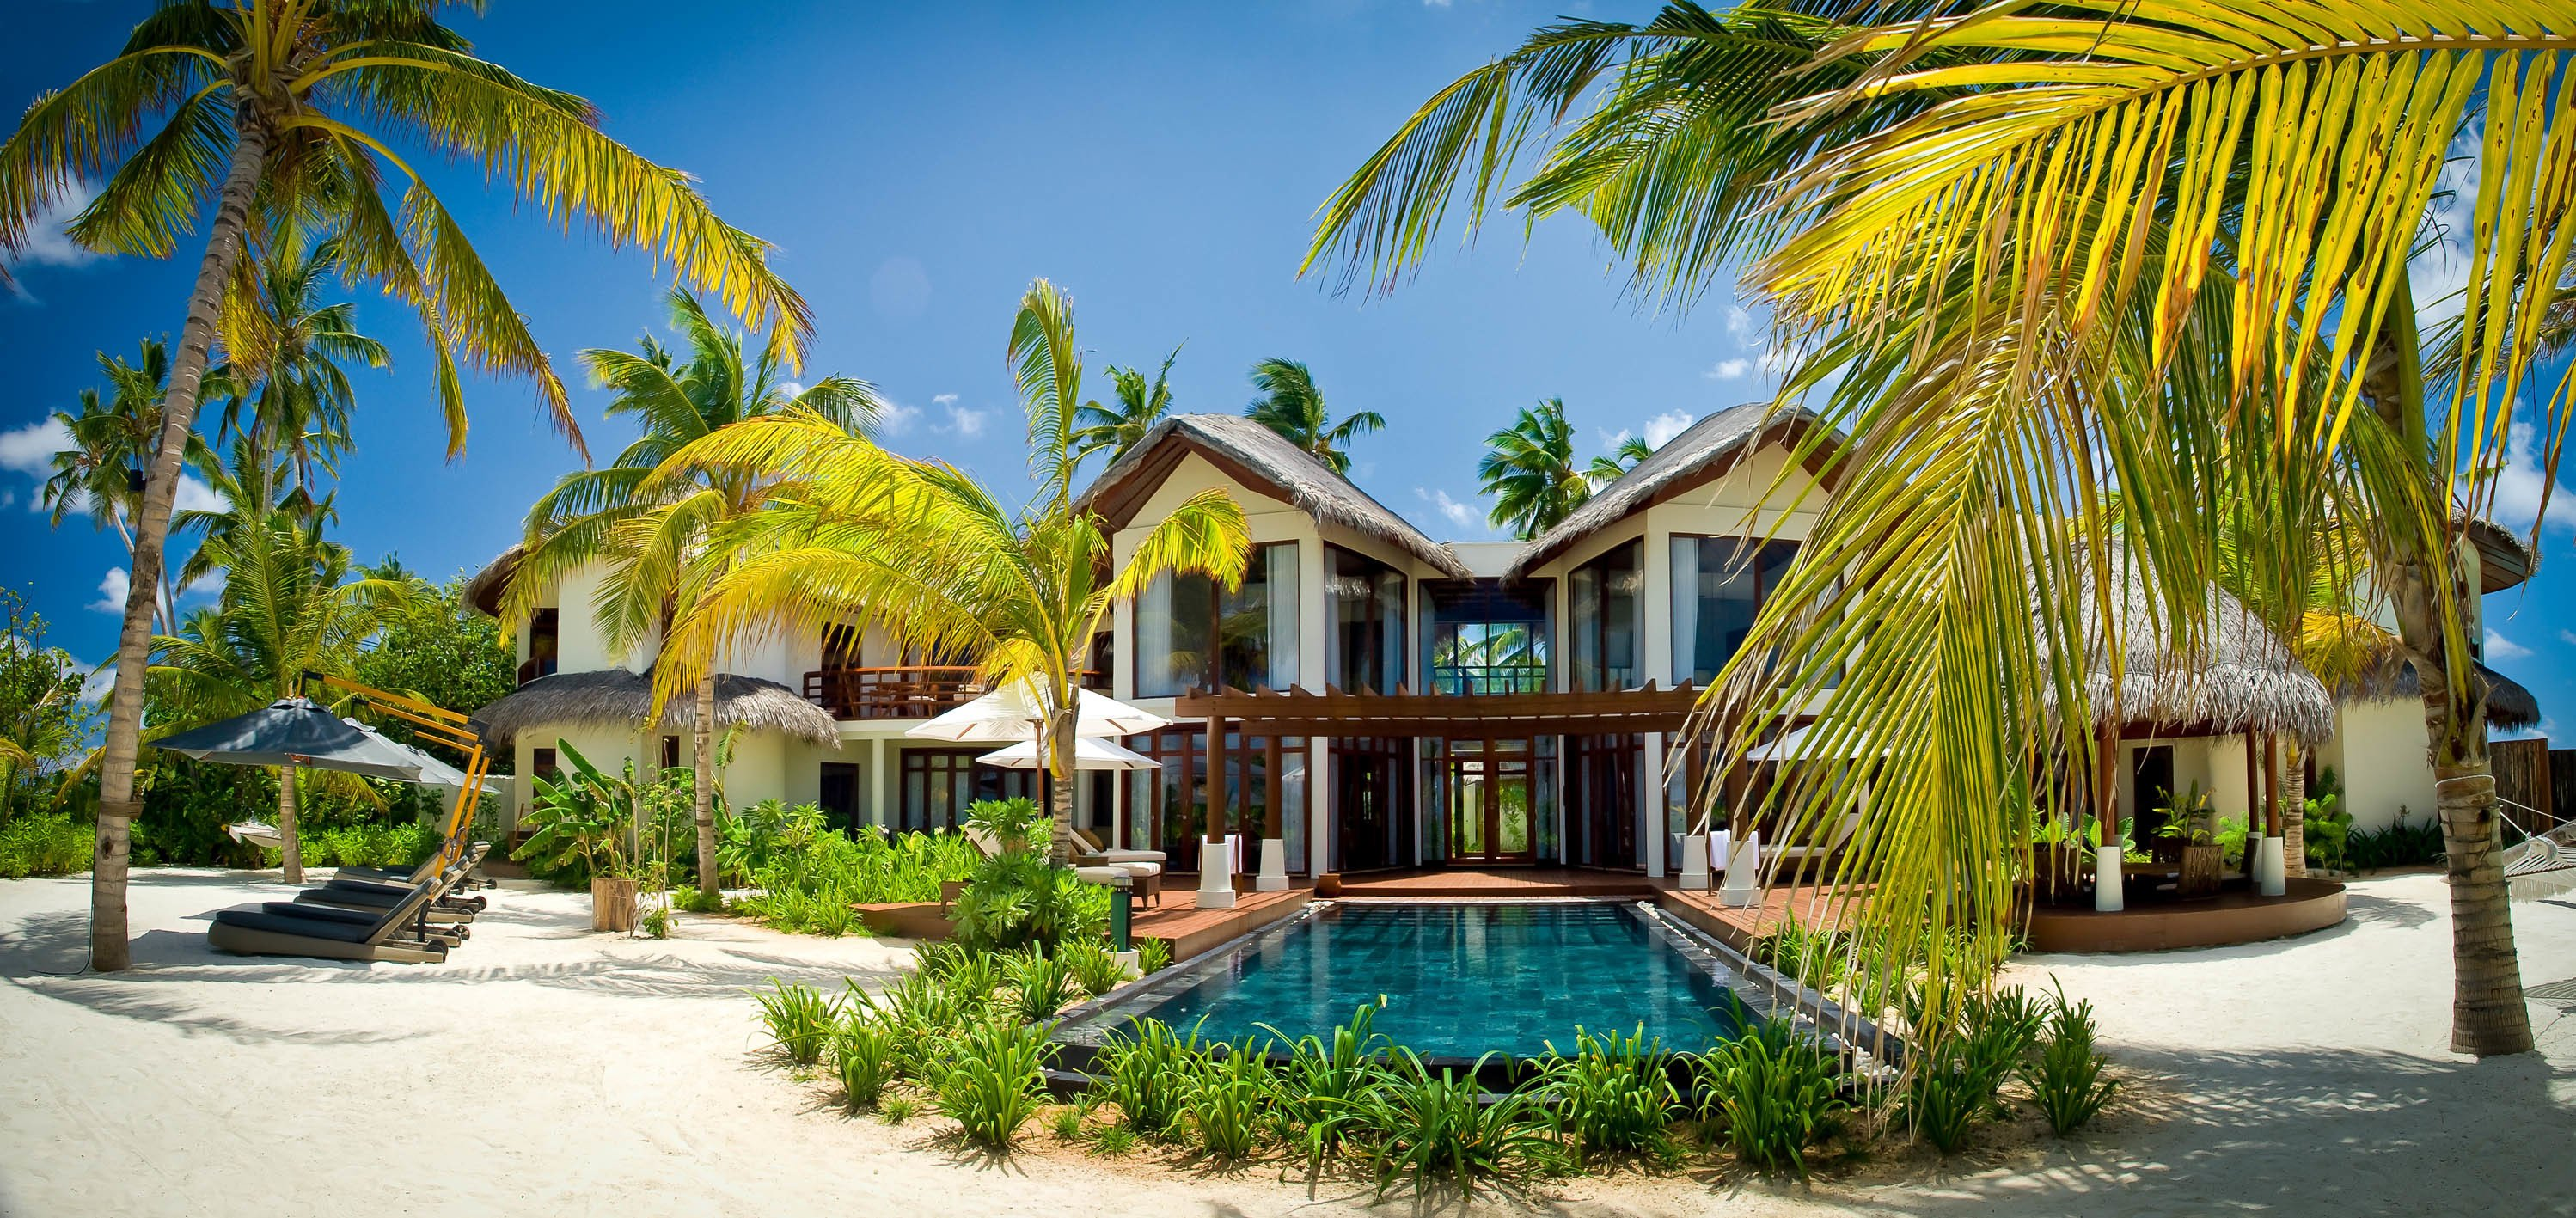 Pool exotic maldives palm trees villa house design for Villas wallpaper